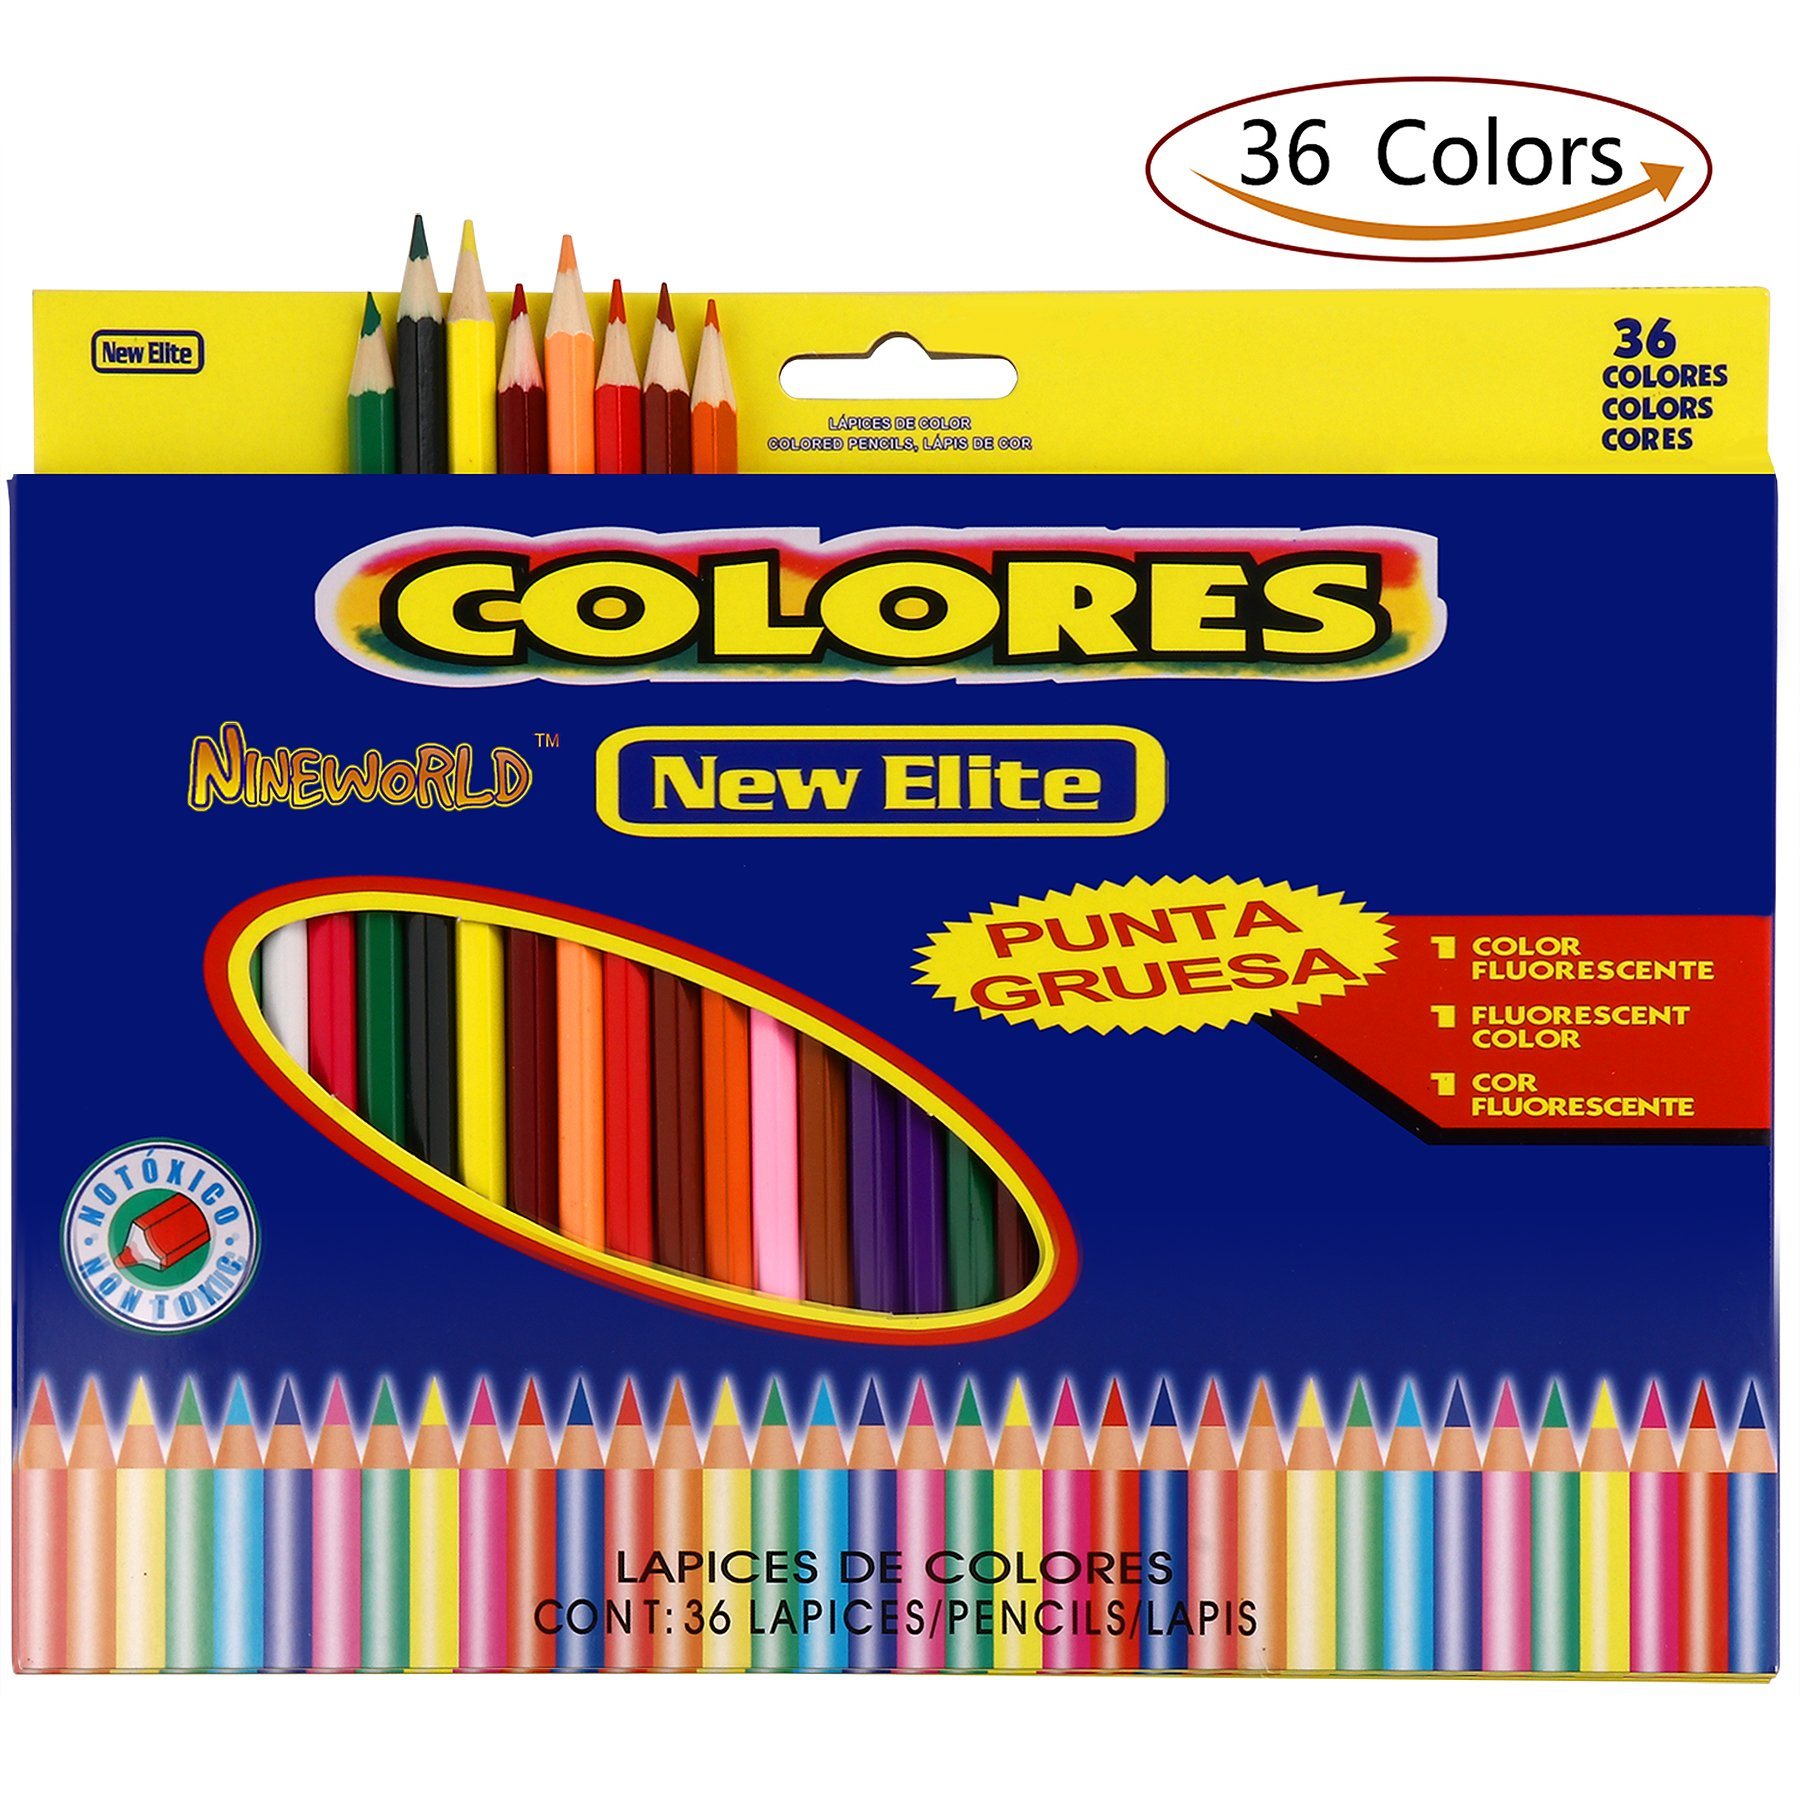 Colored Pencils + Coloring Books , Premium Assorted Oil Based coloring Pencils Set (36 Unique Color) with Thick Cores for Kids & Adults Artwork Coloring, Drawing ,Sketching , Painting